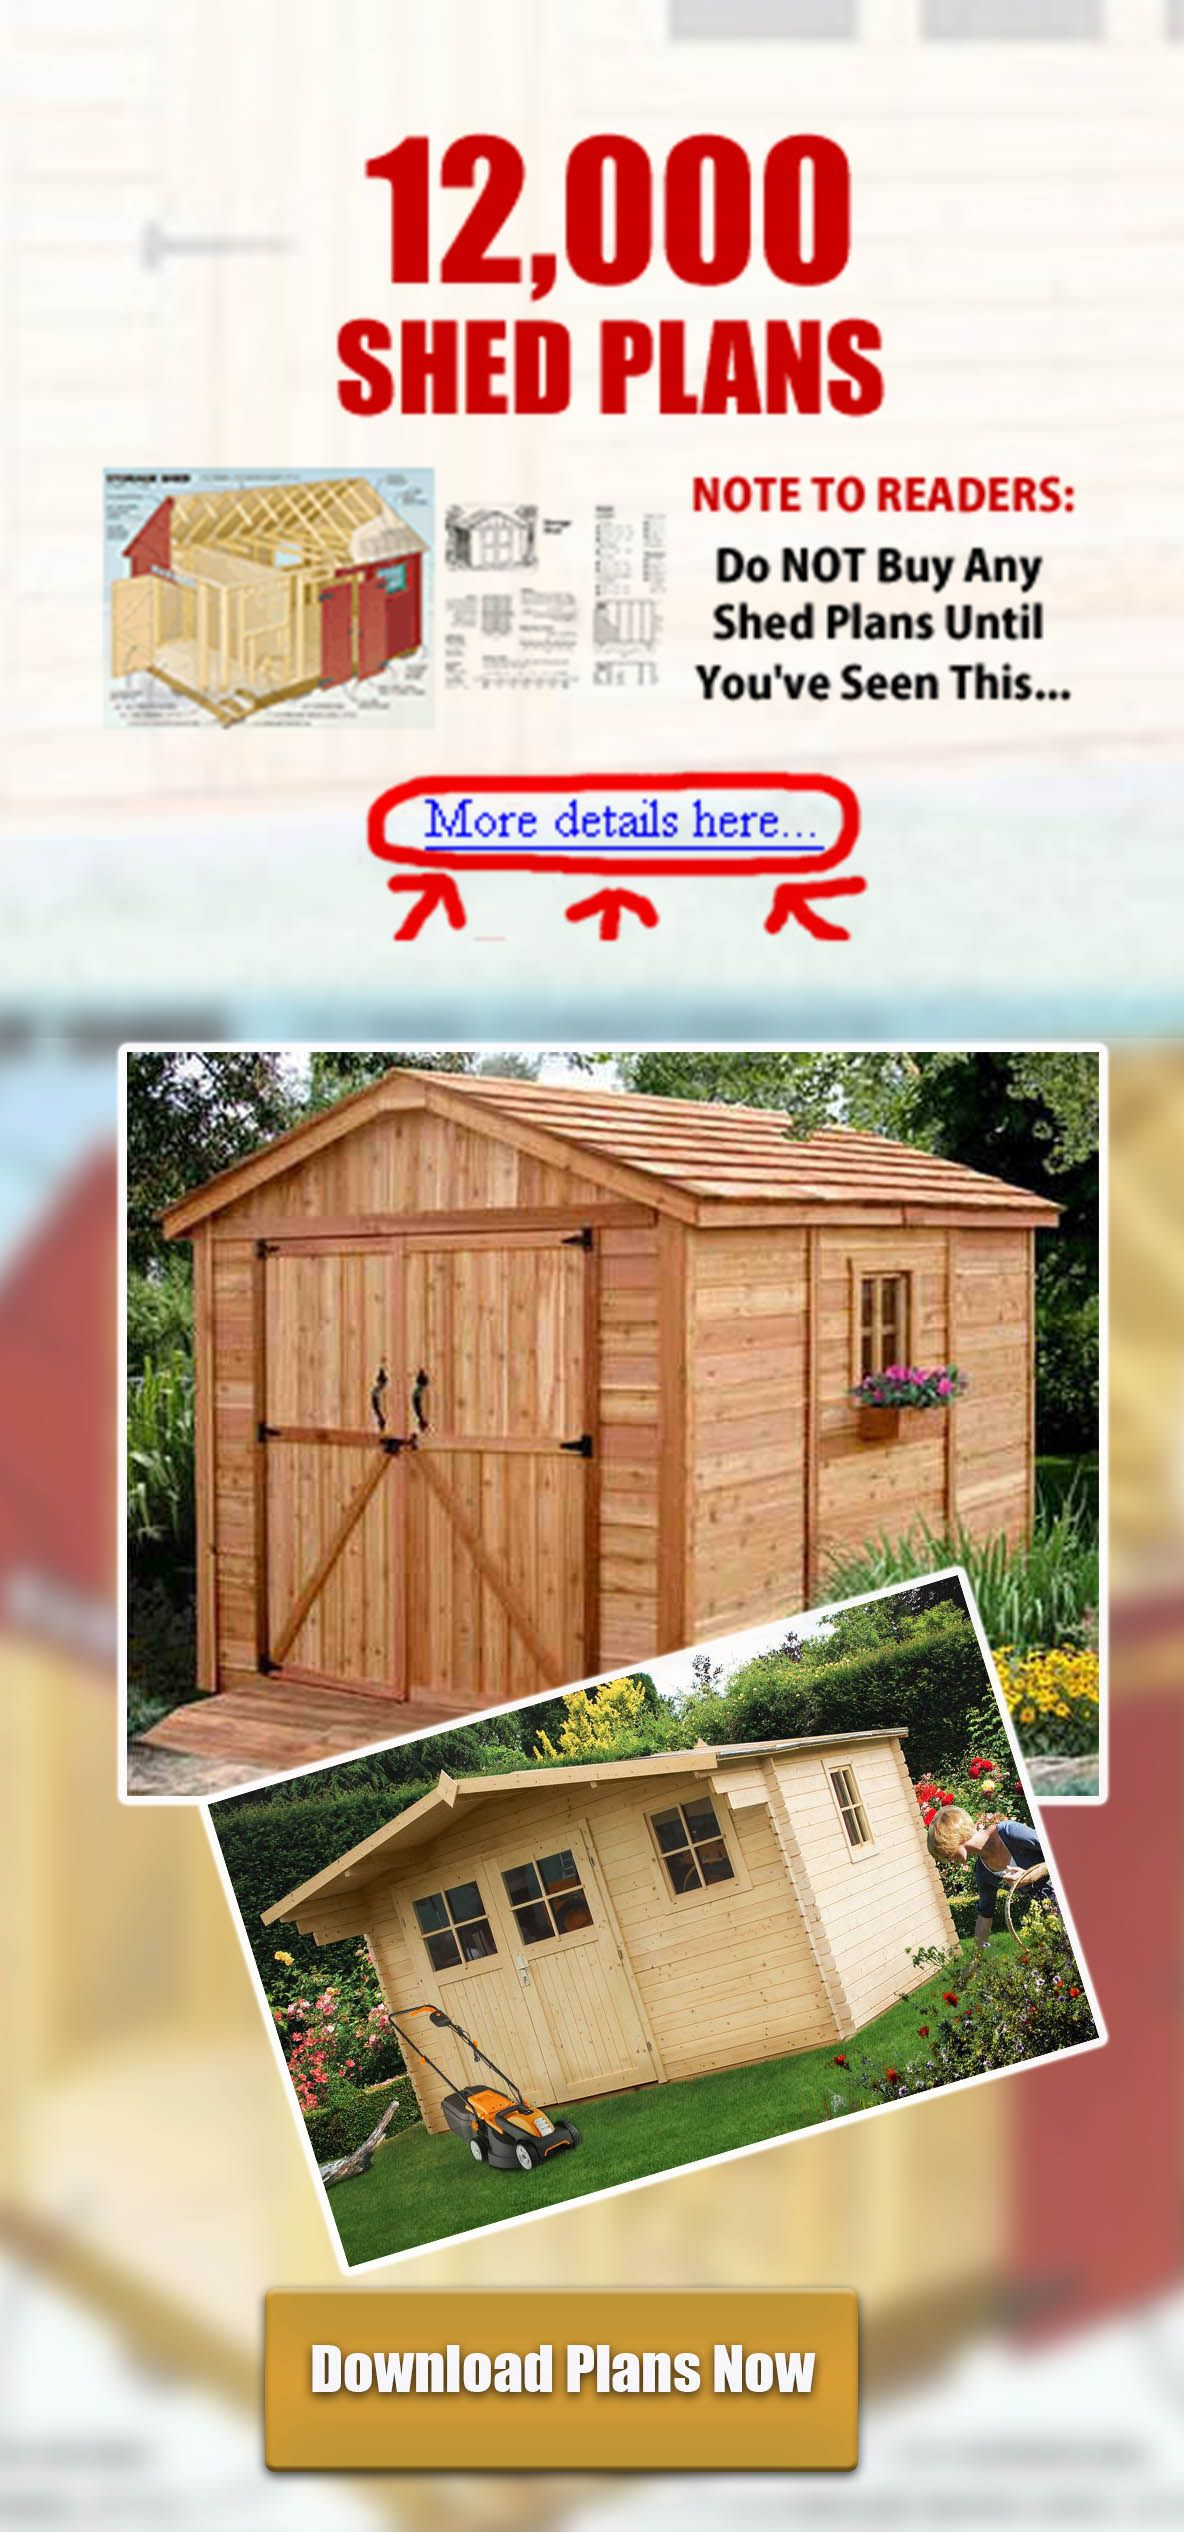 Amazing Shed Design Plans Beautiful And Functional Sheds Shed Design Plans Shed Design Gardening Design Diy